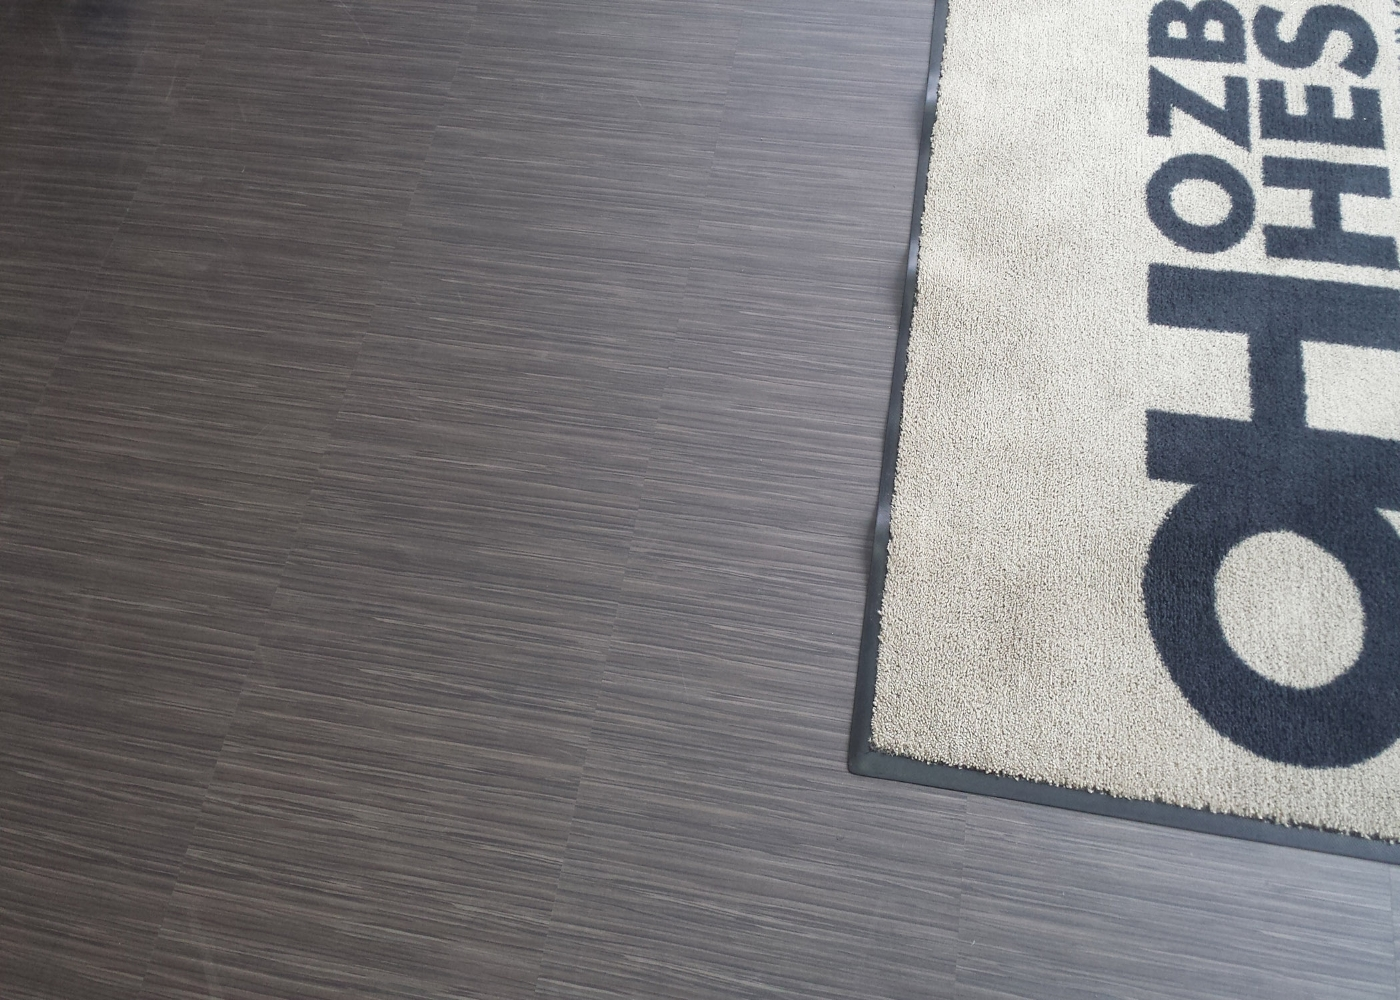 Luxury Vinyl Tile -- Otherwise known as LVT (hyperlink) is an incredibly popular flooring among Ozburn-Hessey clients. Like rubber, LVT is a durable material for constant wear and tear. In additional, as it's name states, it's look is luxurious!